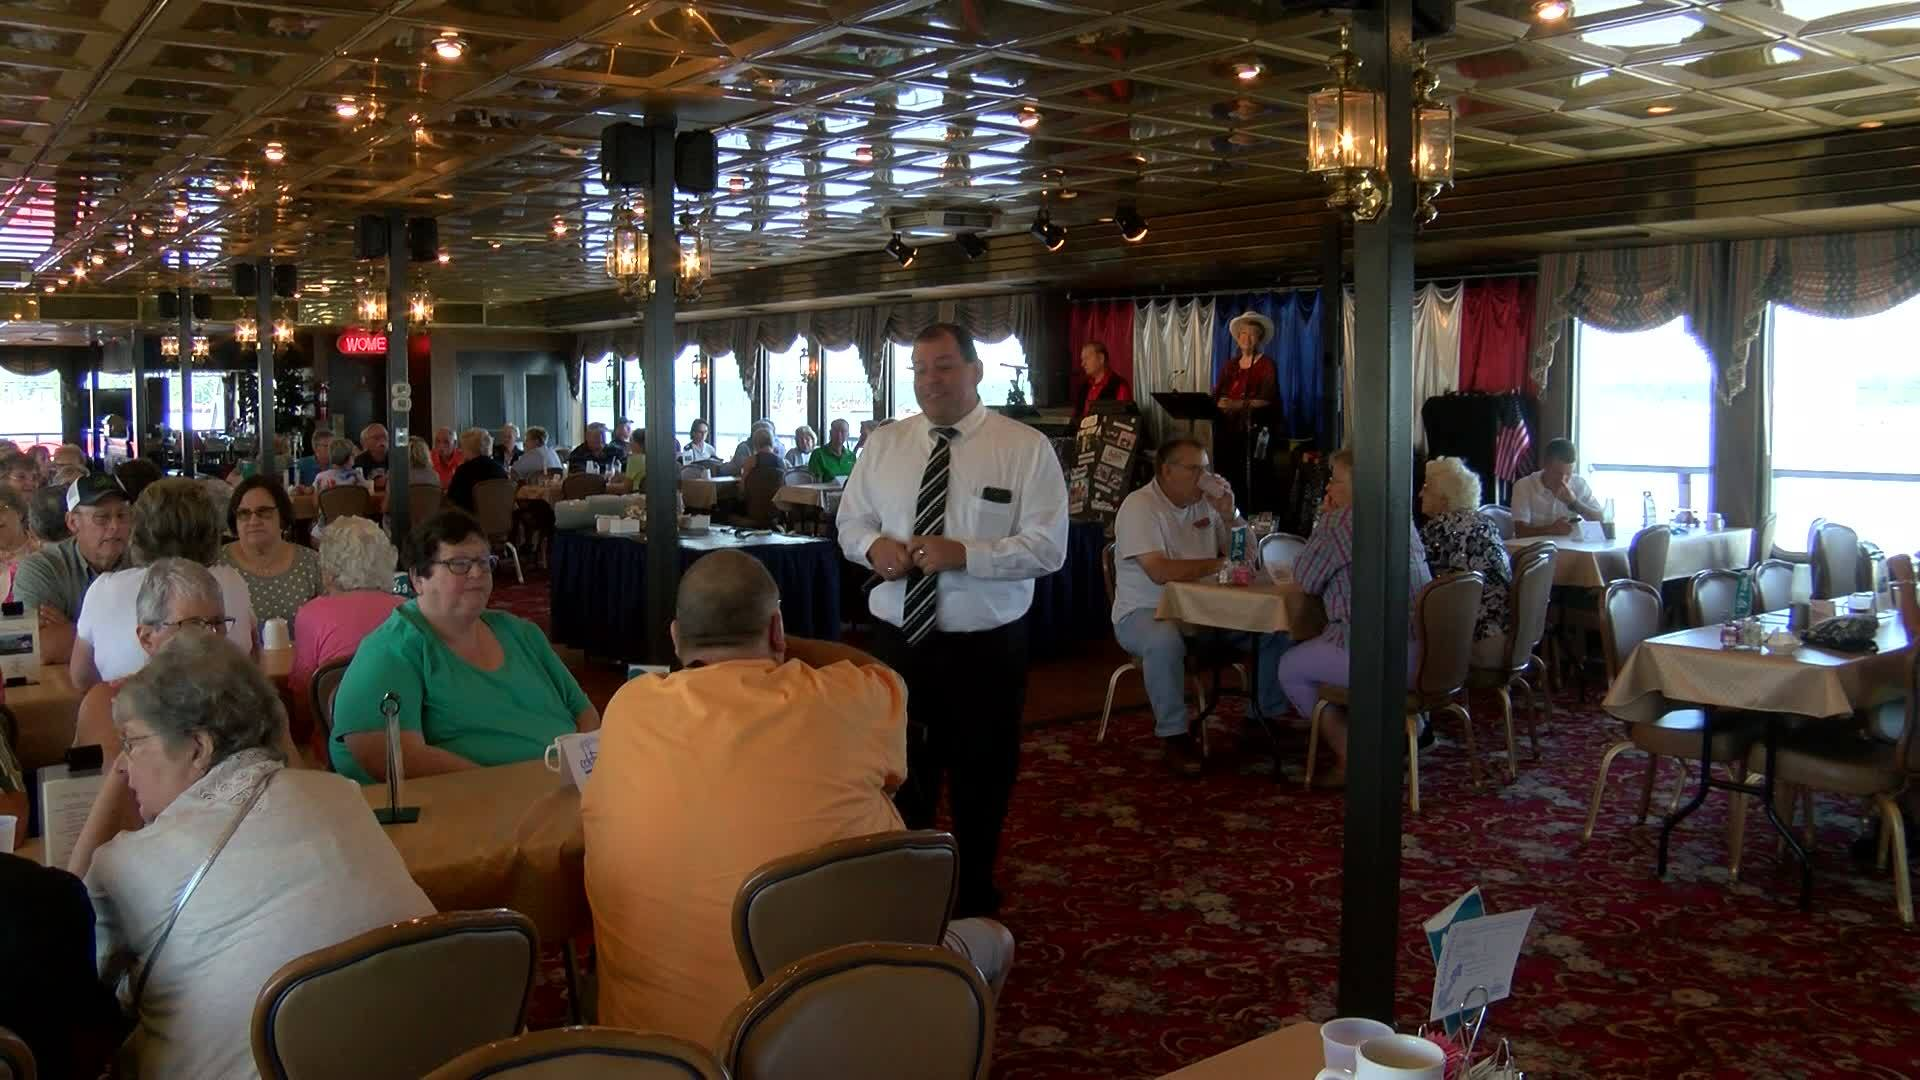 Destination Illinois: Celebration Belle river cruises